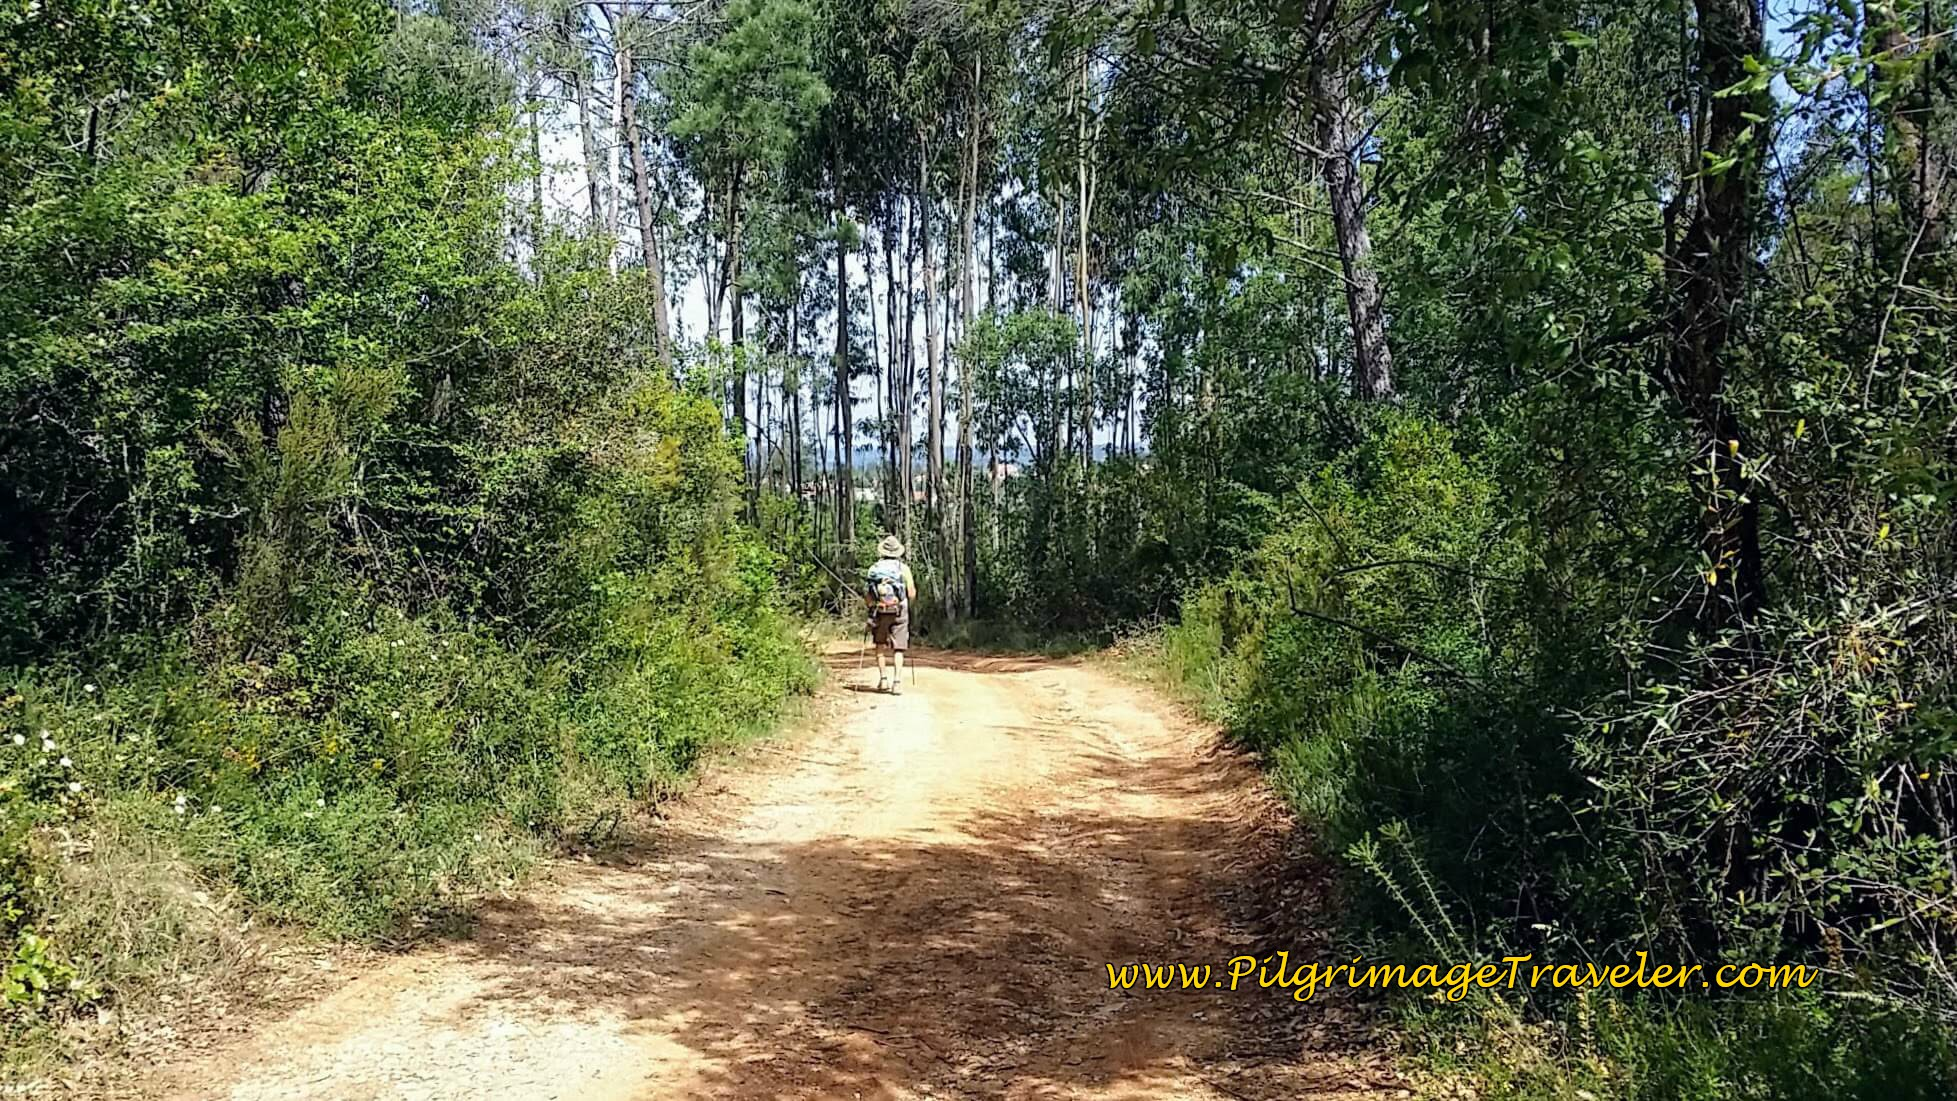 Onward on the Forest Road - Conimbriga is Near